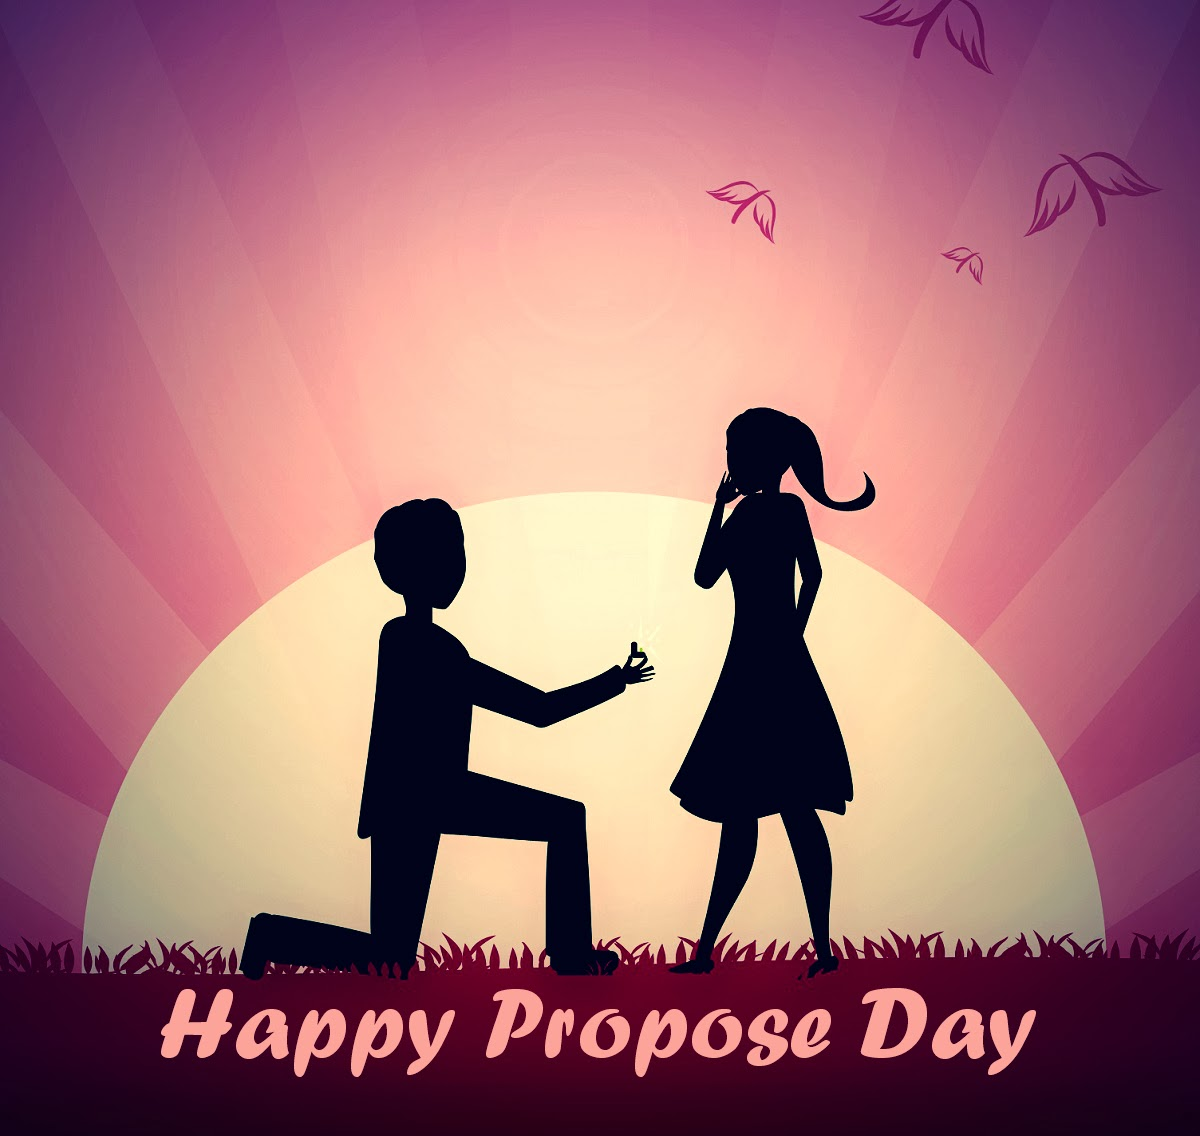 Propose Day 2016 Wallpaper And Proposal Images